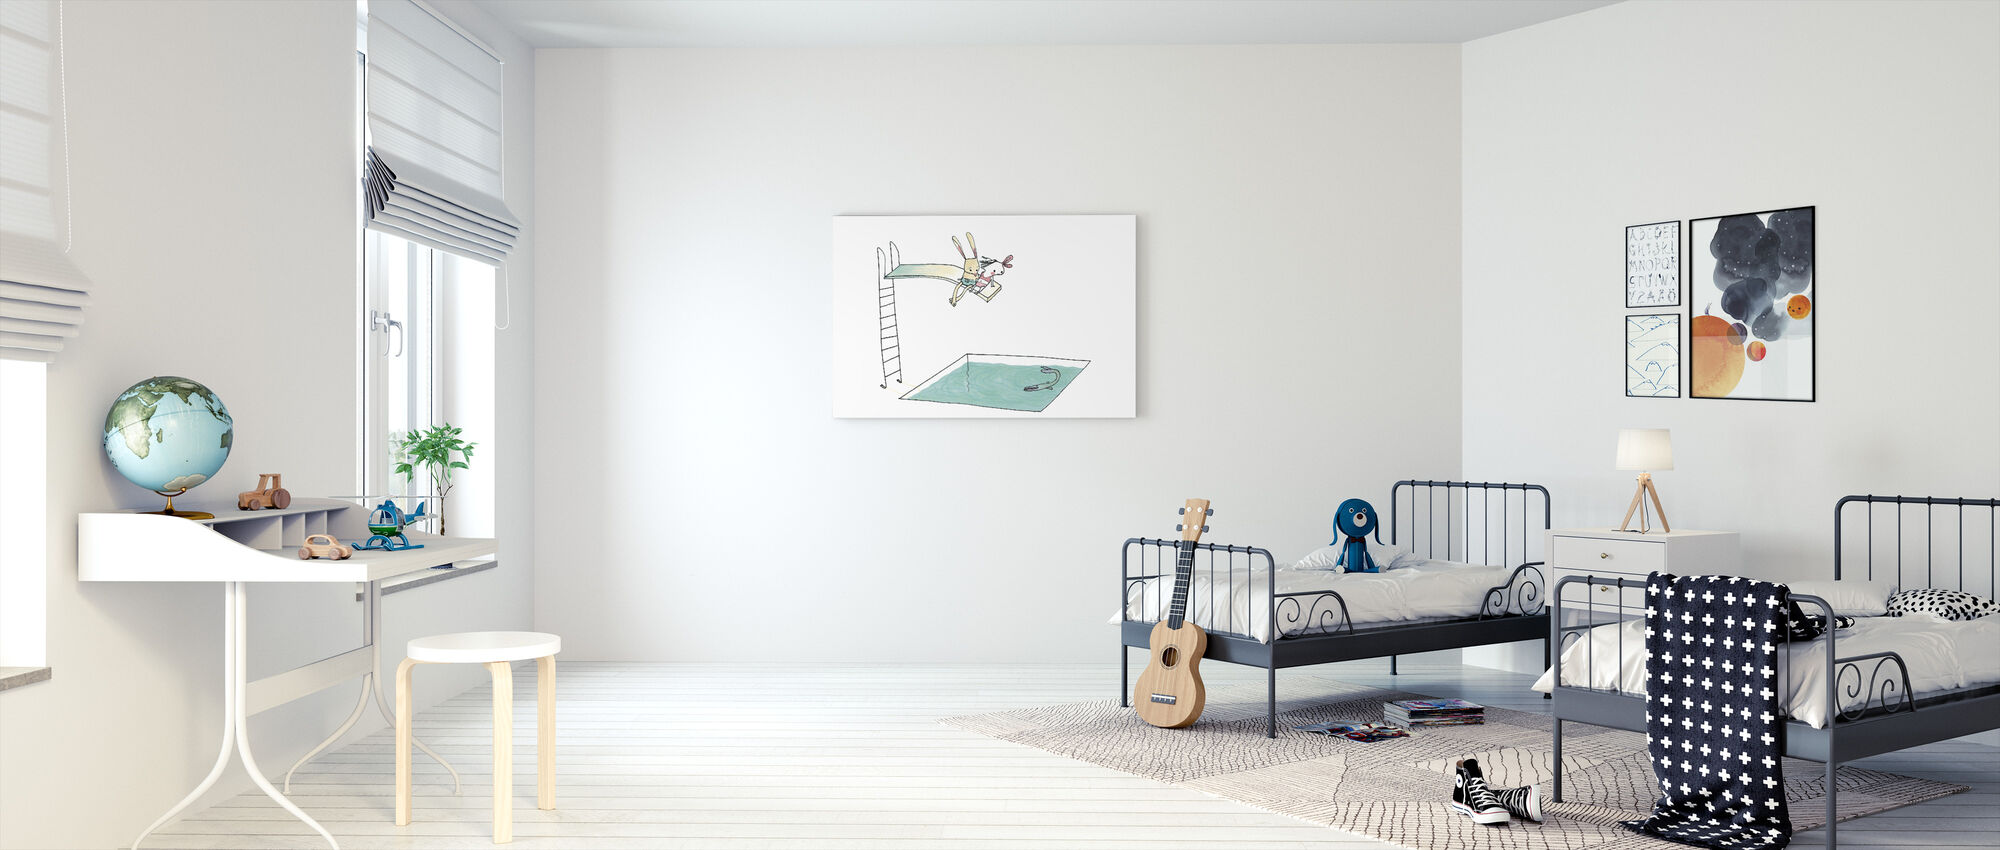 On the Trampoline Near The Rabbit - Canvas print - Kids Room